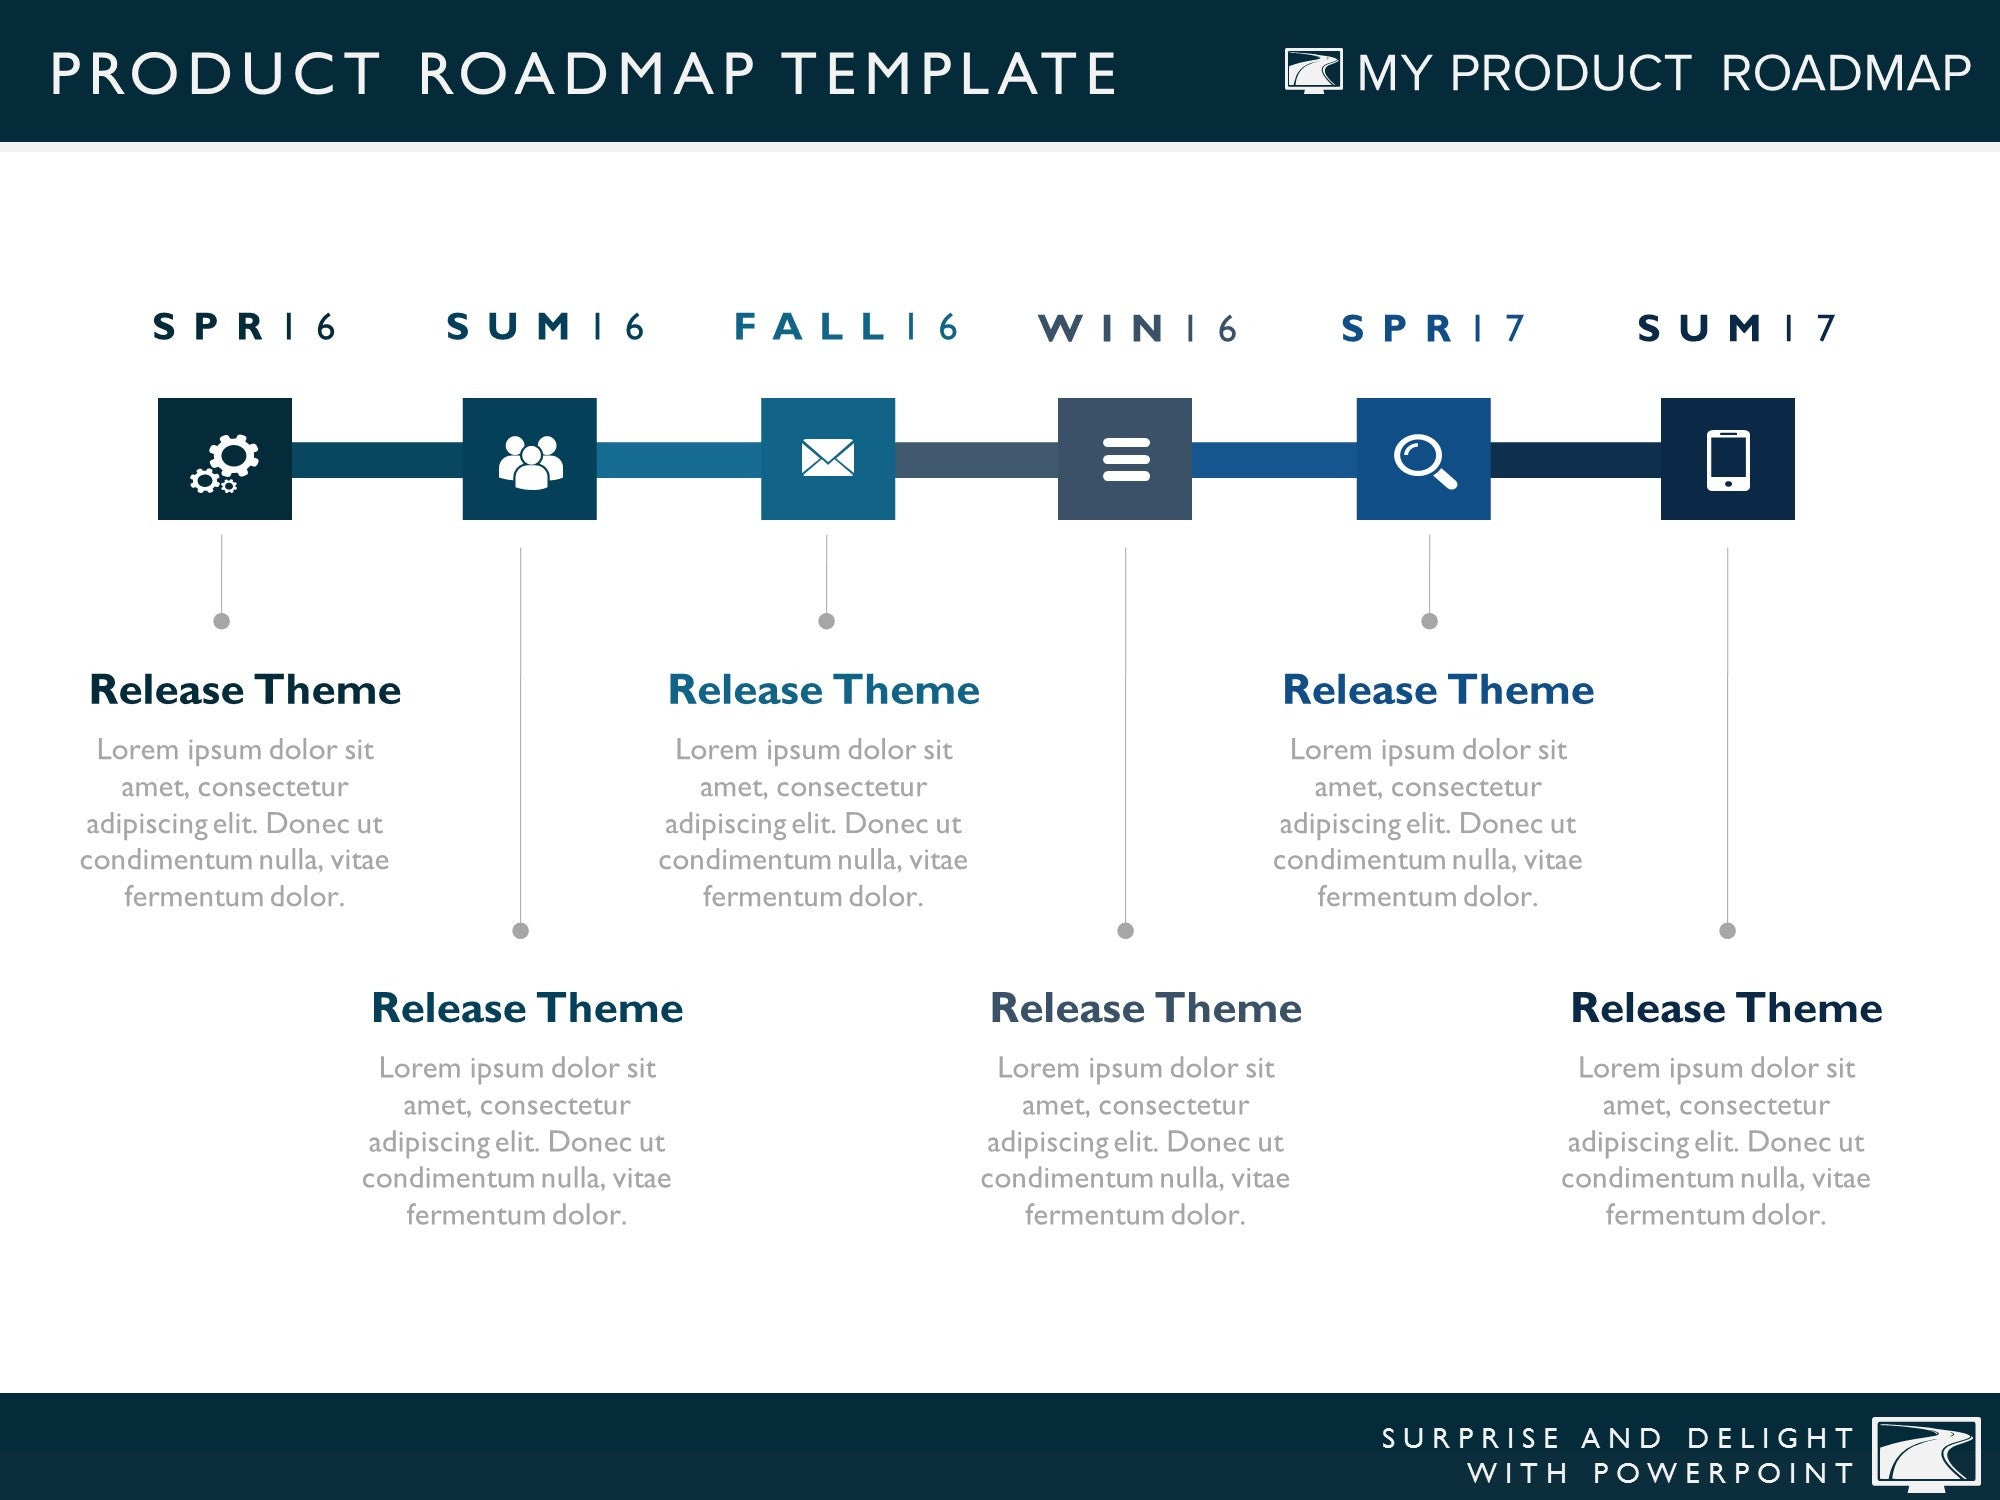 My Product Roadmap